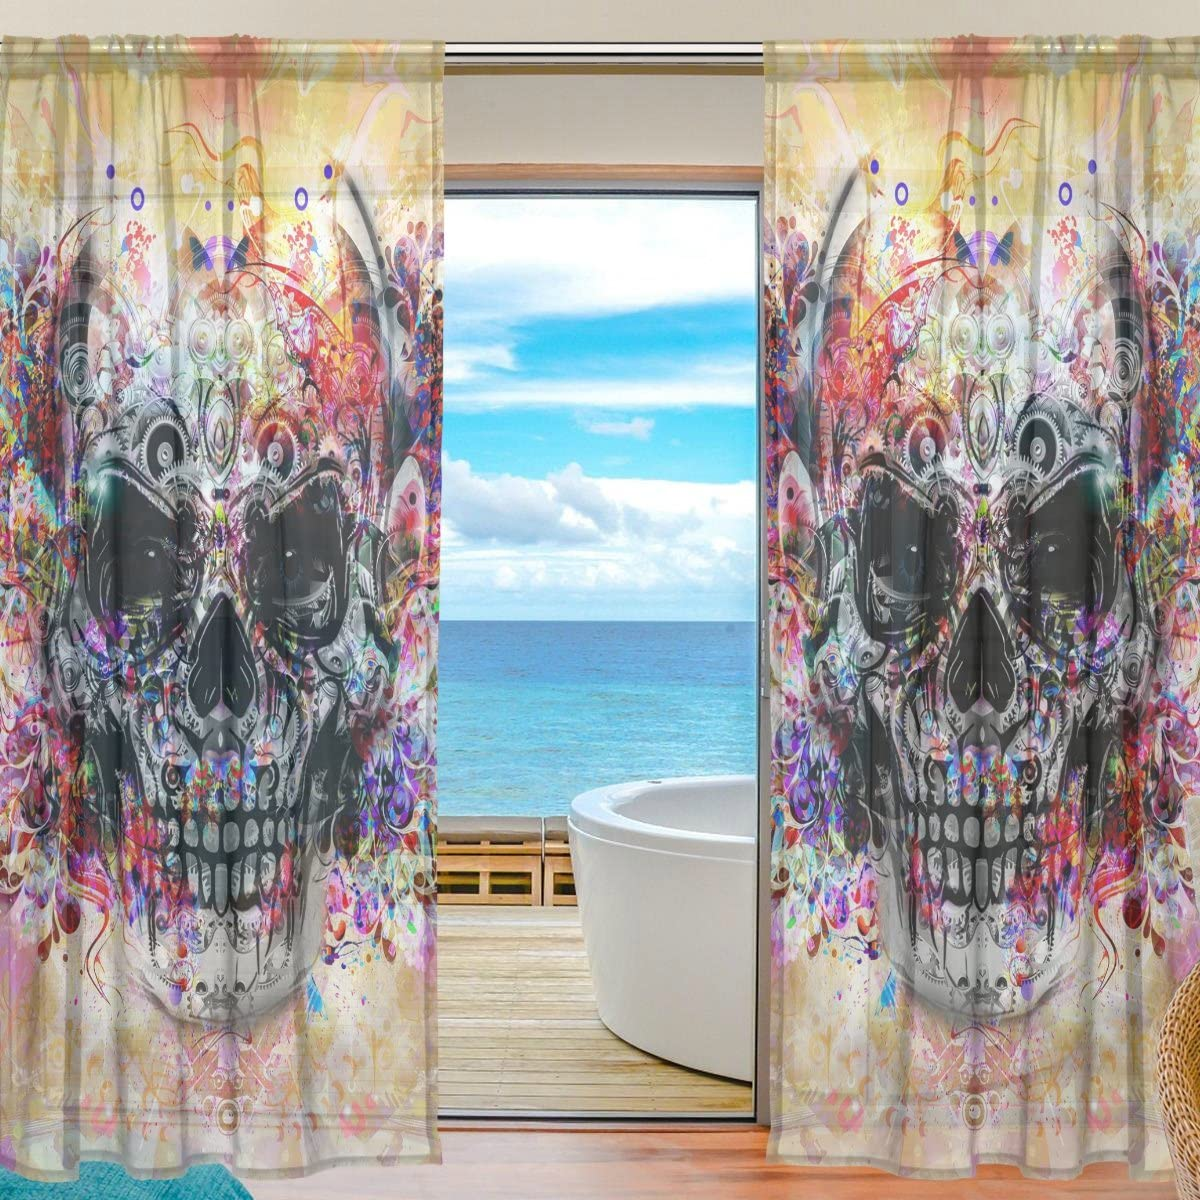 SAVSV Window Sheer Curtains Panels Voile Drapes Morden Colorful Watercolor Skull 55 W x 84 L 2 Panels Great For Living Room Bedroom Girl s Room